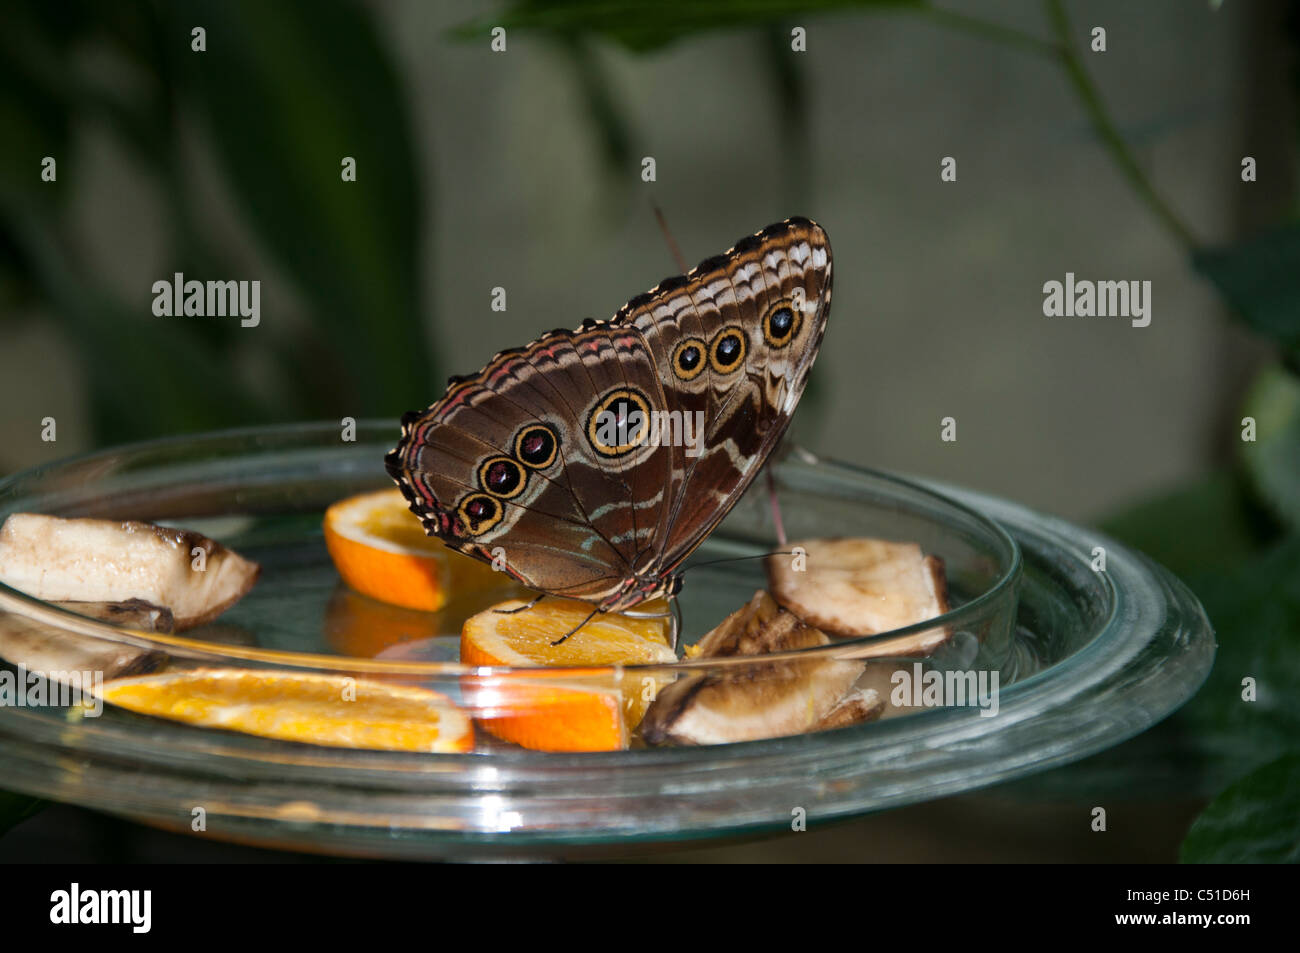 Butterfly in a tropical house on the island Mainau in the Lake of Constance Schmetterling im Schmetterlingshaus - Stock Image